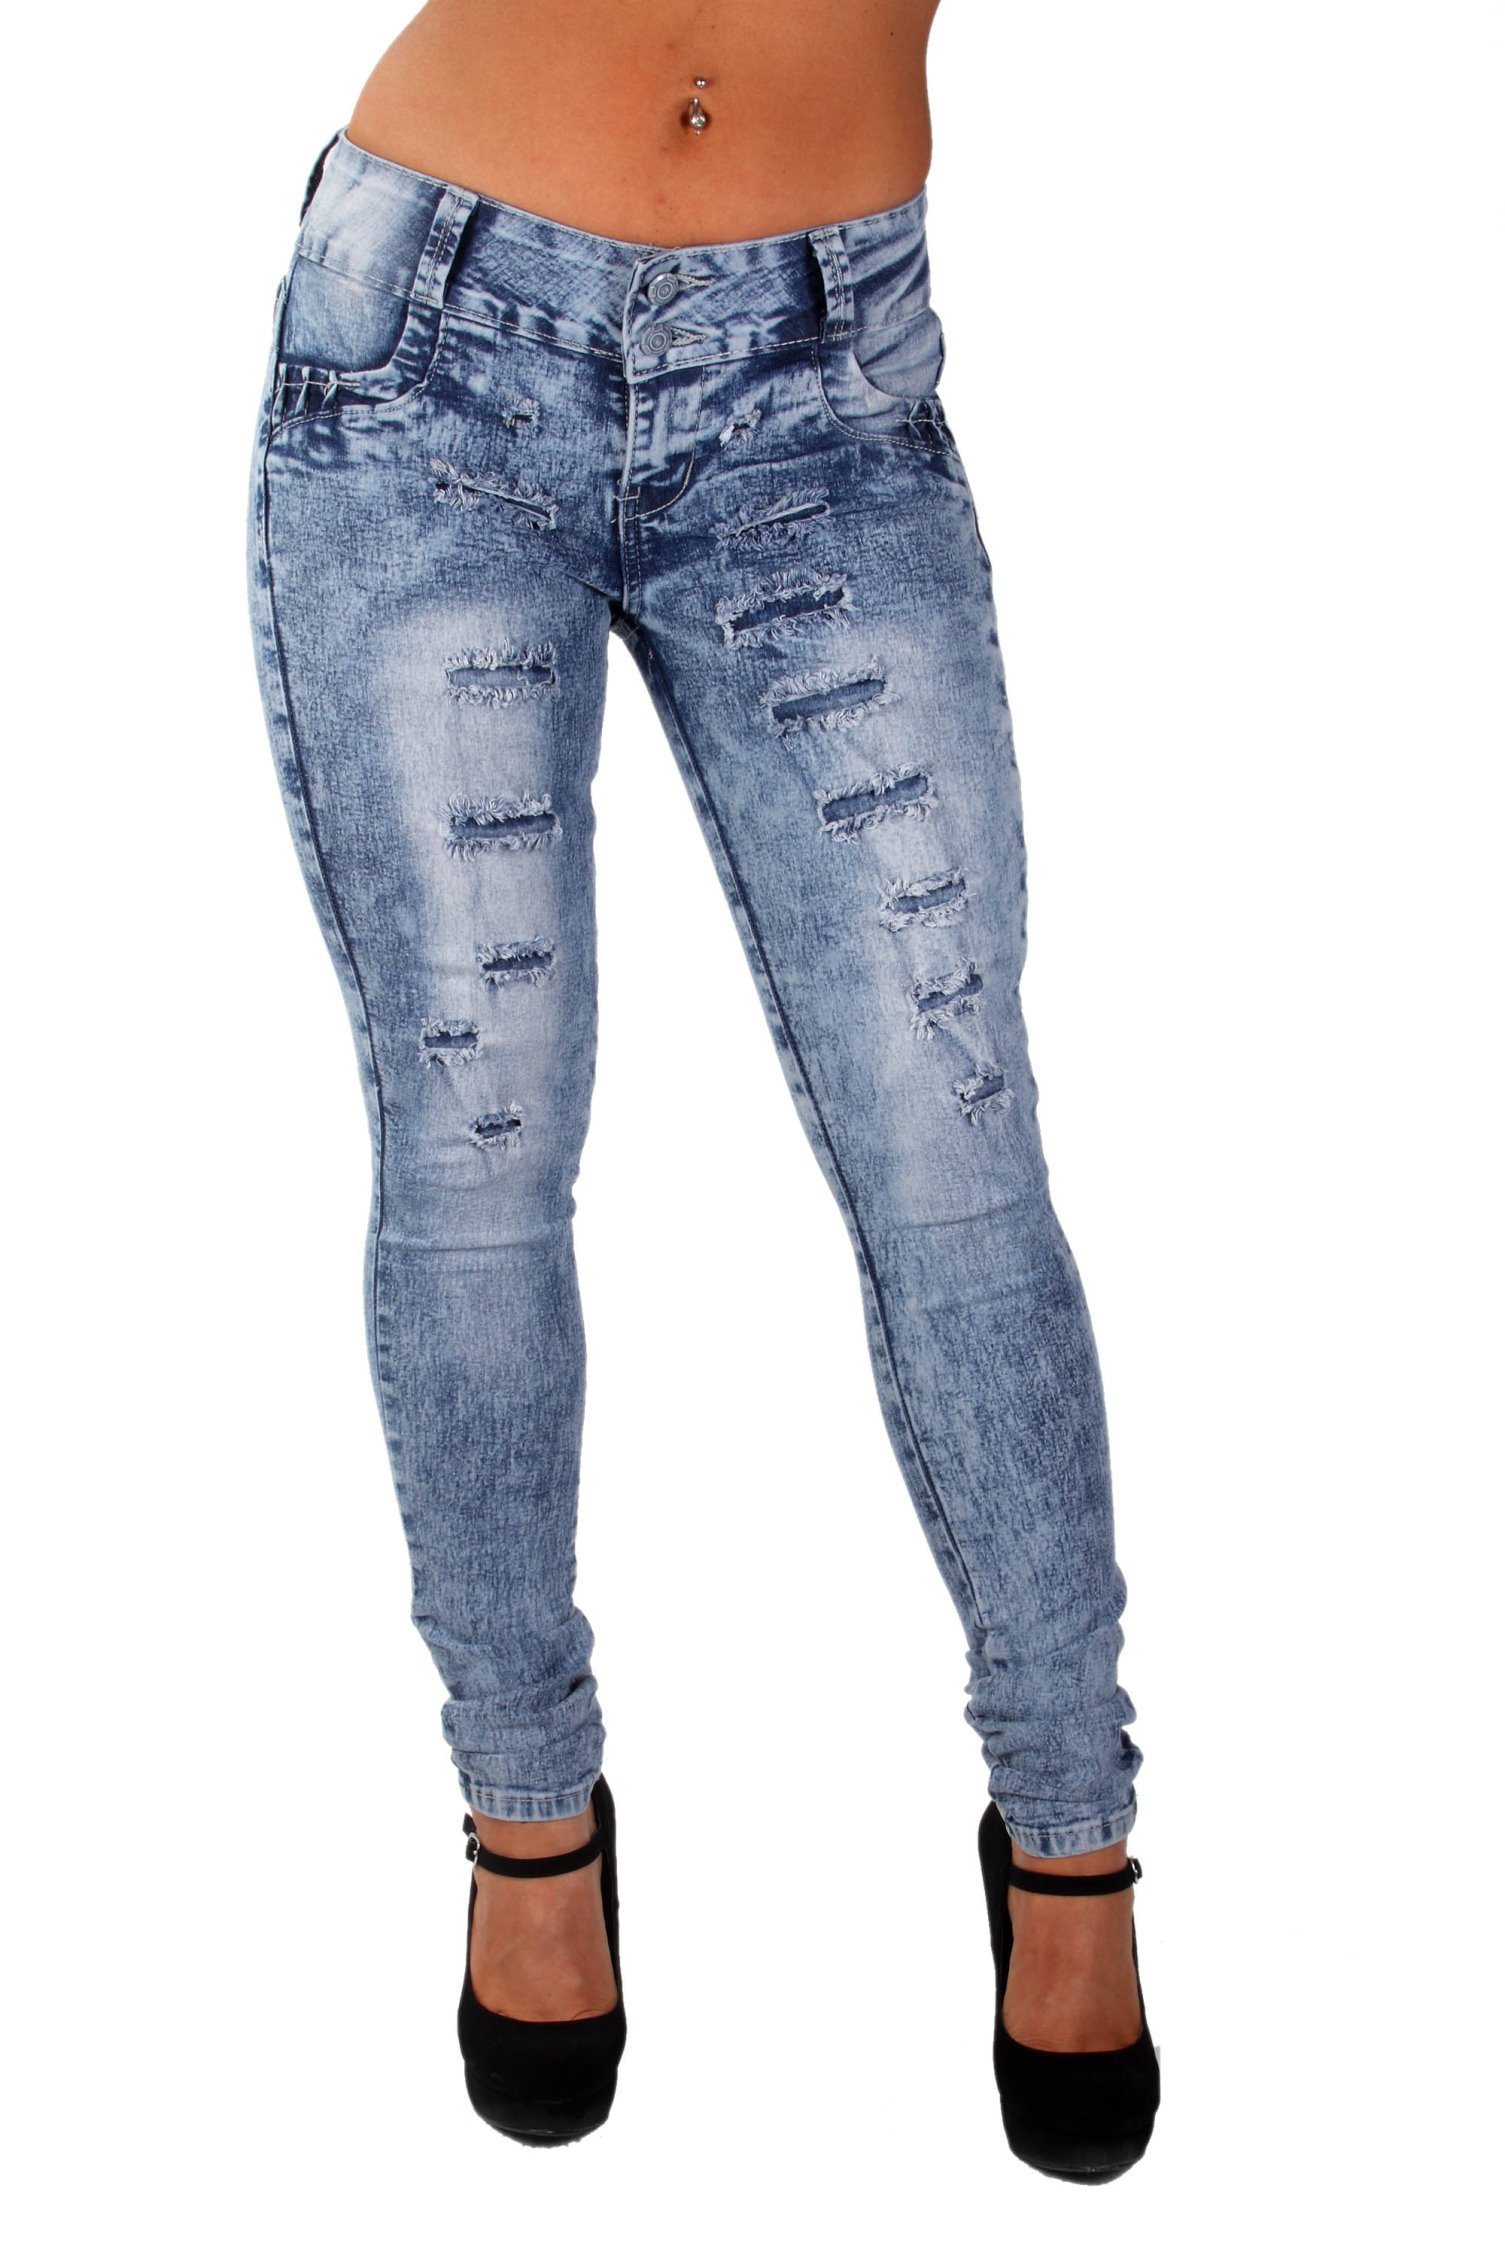 Style G675– Colombian Design, Butt Lift, Levanta Cola, Ripped Skinny Jeans in Washed M. Blue Size 9